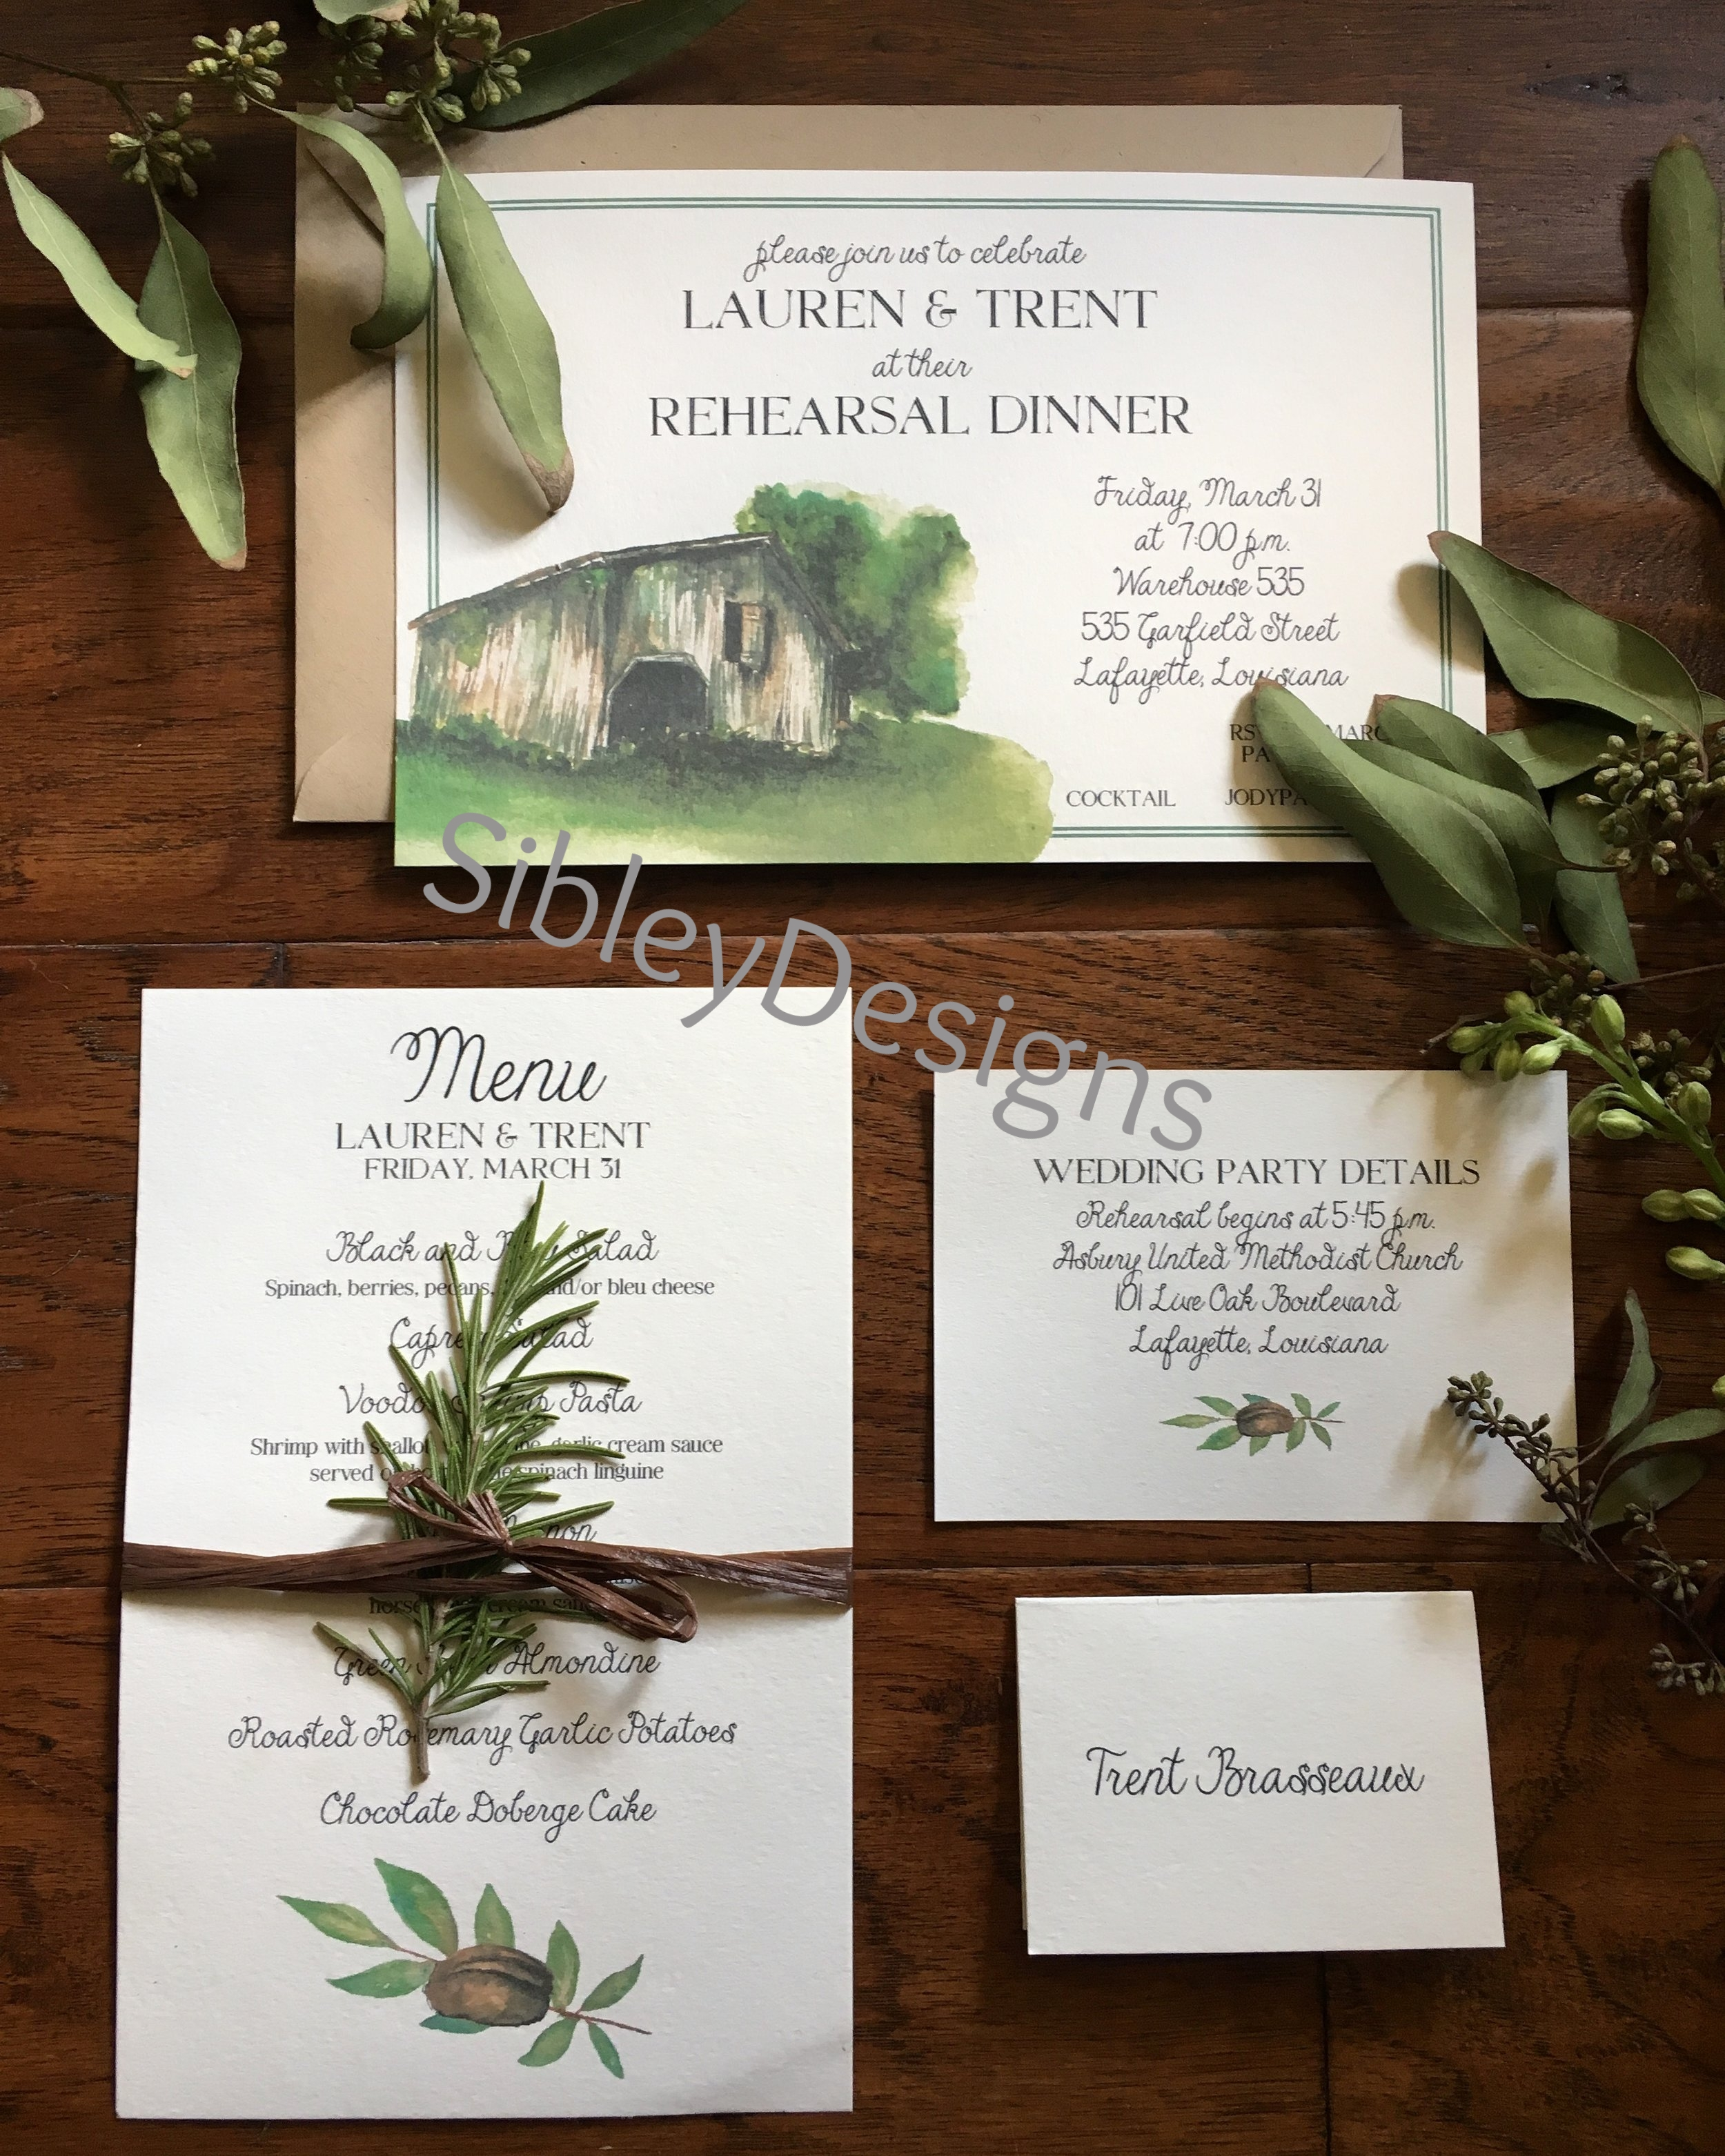 Lauren's Rehearsal Dinner invitation, menu